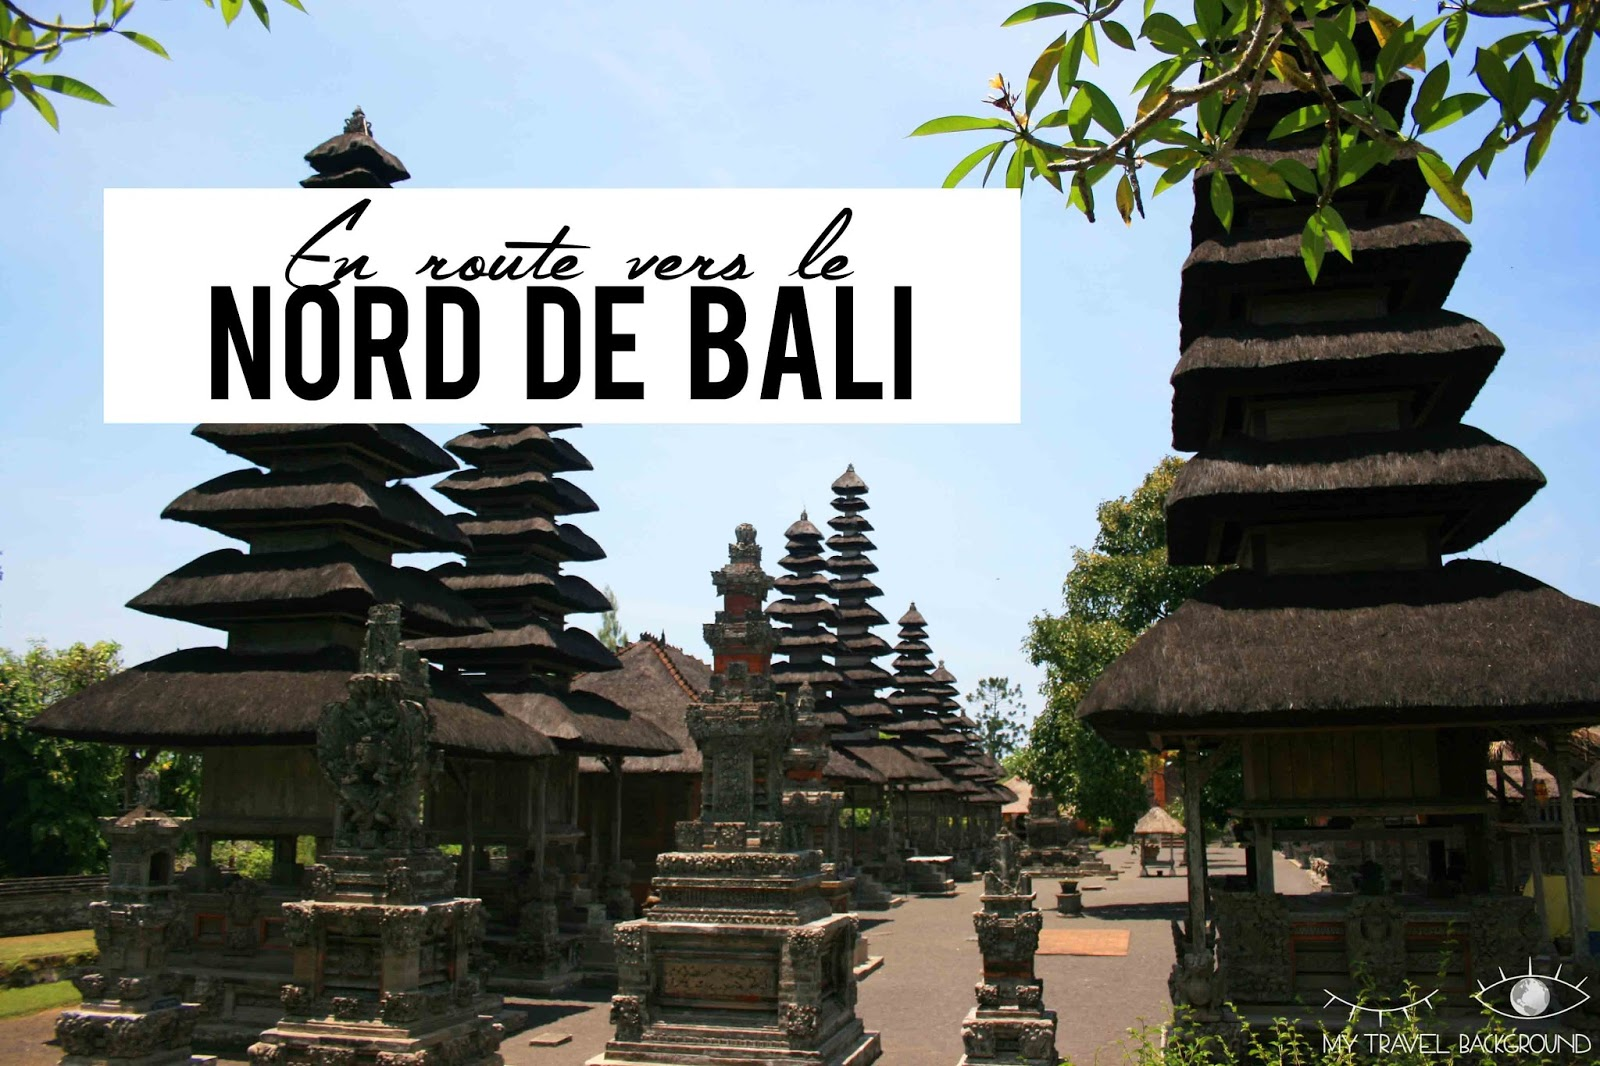 My Travel Background : que visiter dans le Nord de Bali?